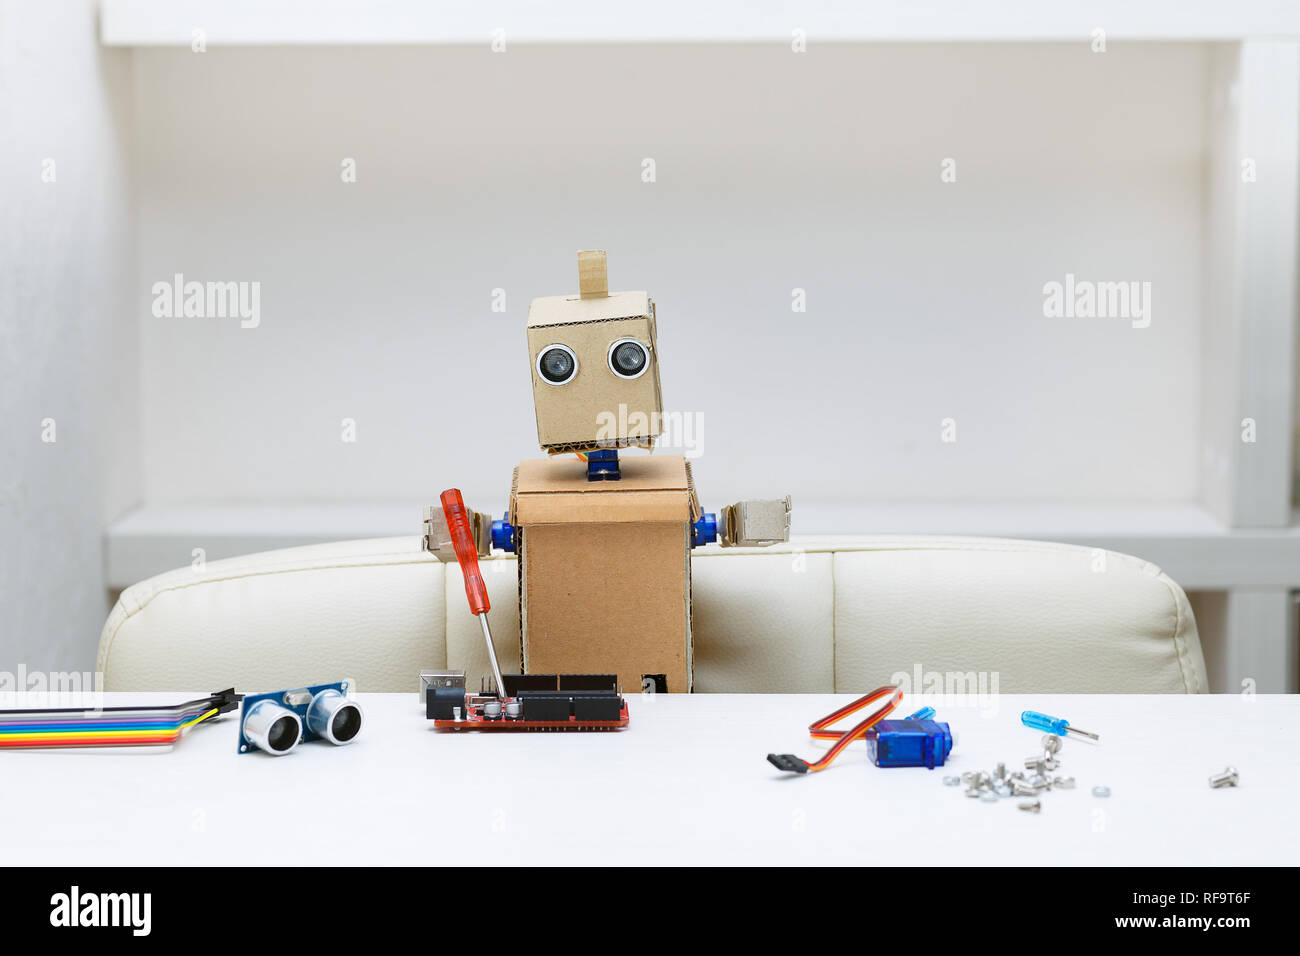 robot sits at a table and holds a screwdriver lying next to a robot